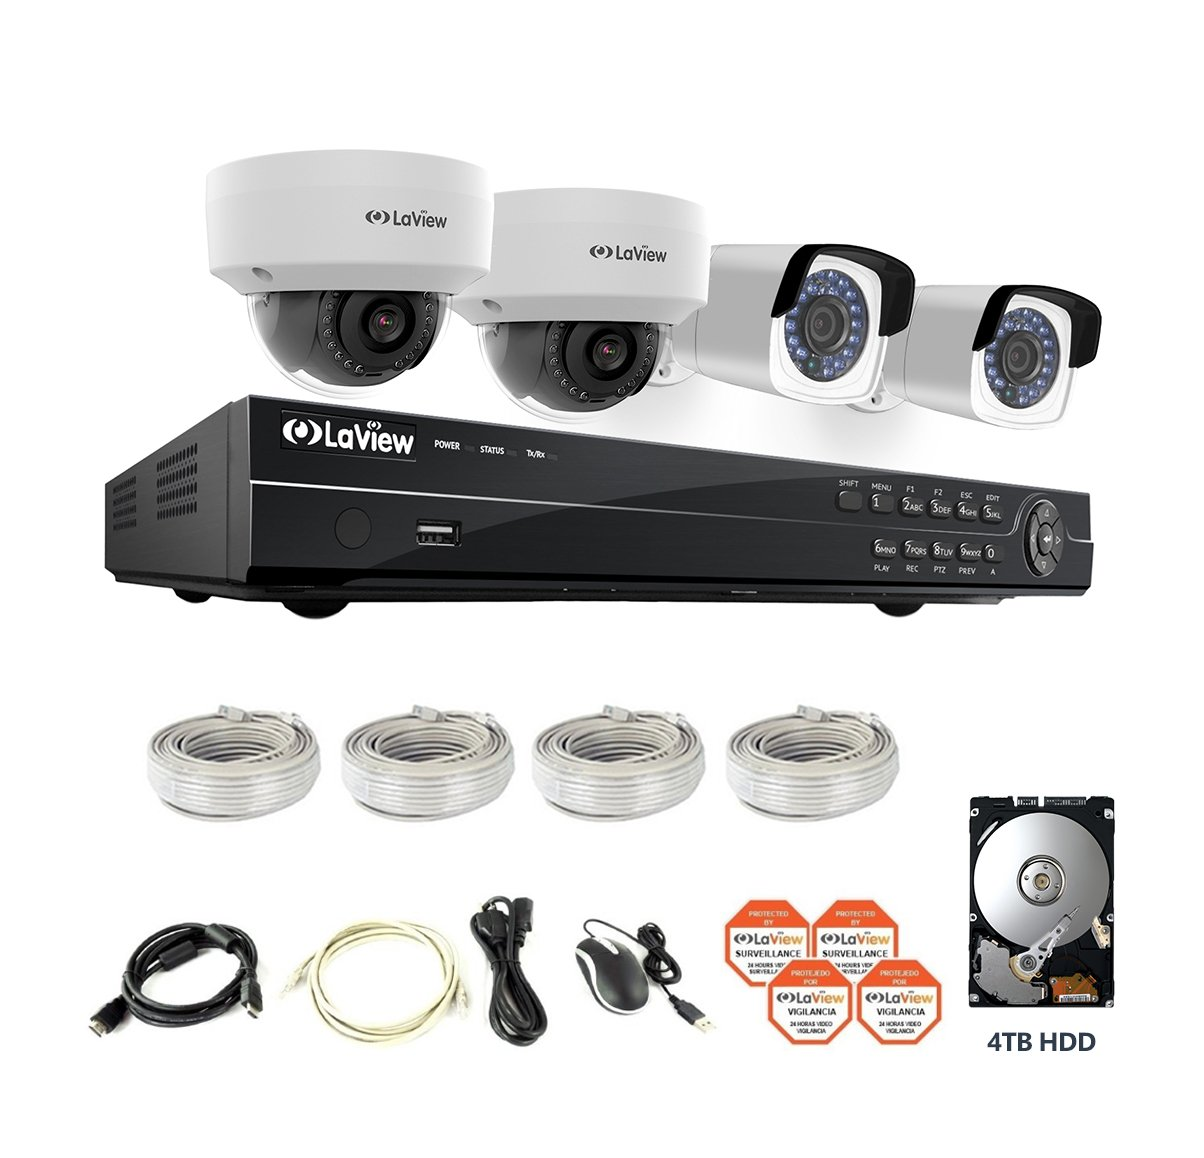 Amazon.com : LaView 4-Megapixel (2688 x 1520) 8CH PoE NVR Security Cameras System - 4 4MP Security Camera System - 2 4MP Bullet and 2 4MP Dome IP ...